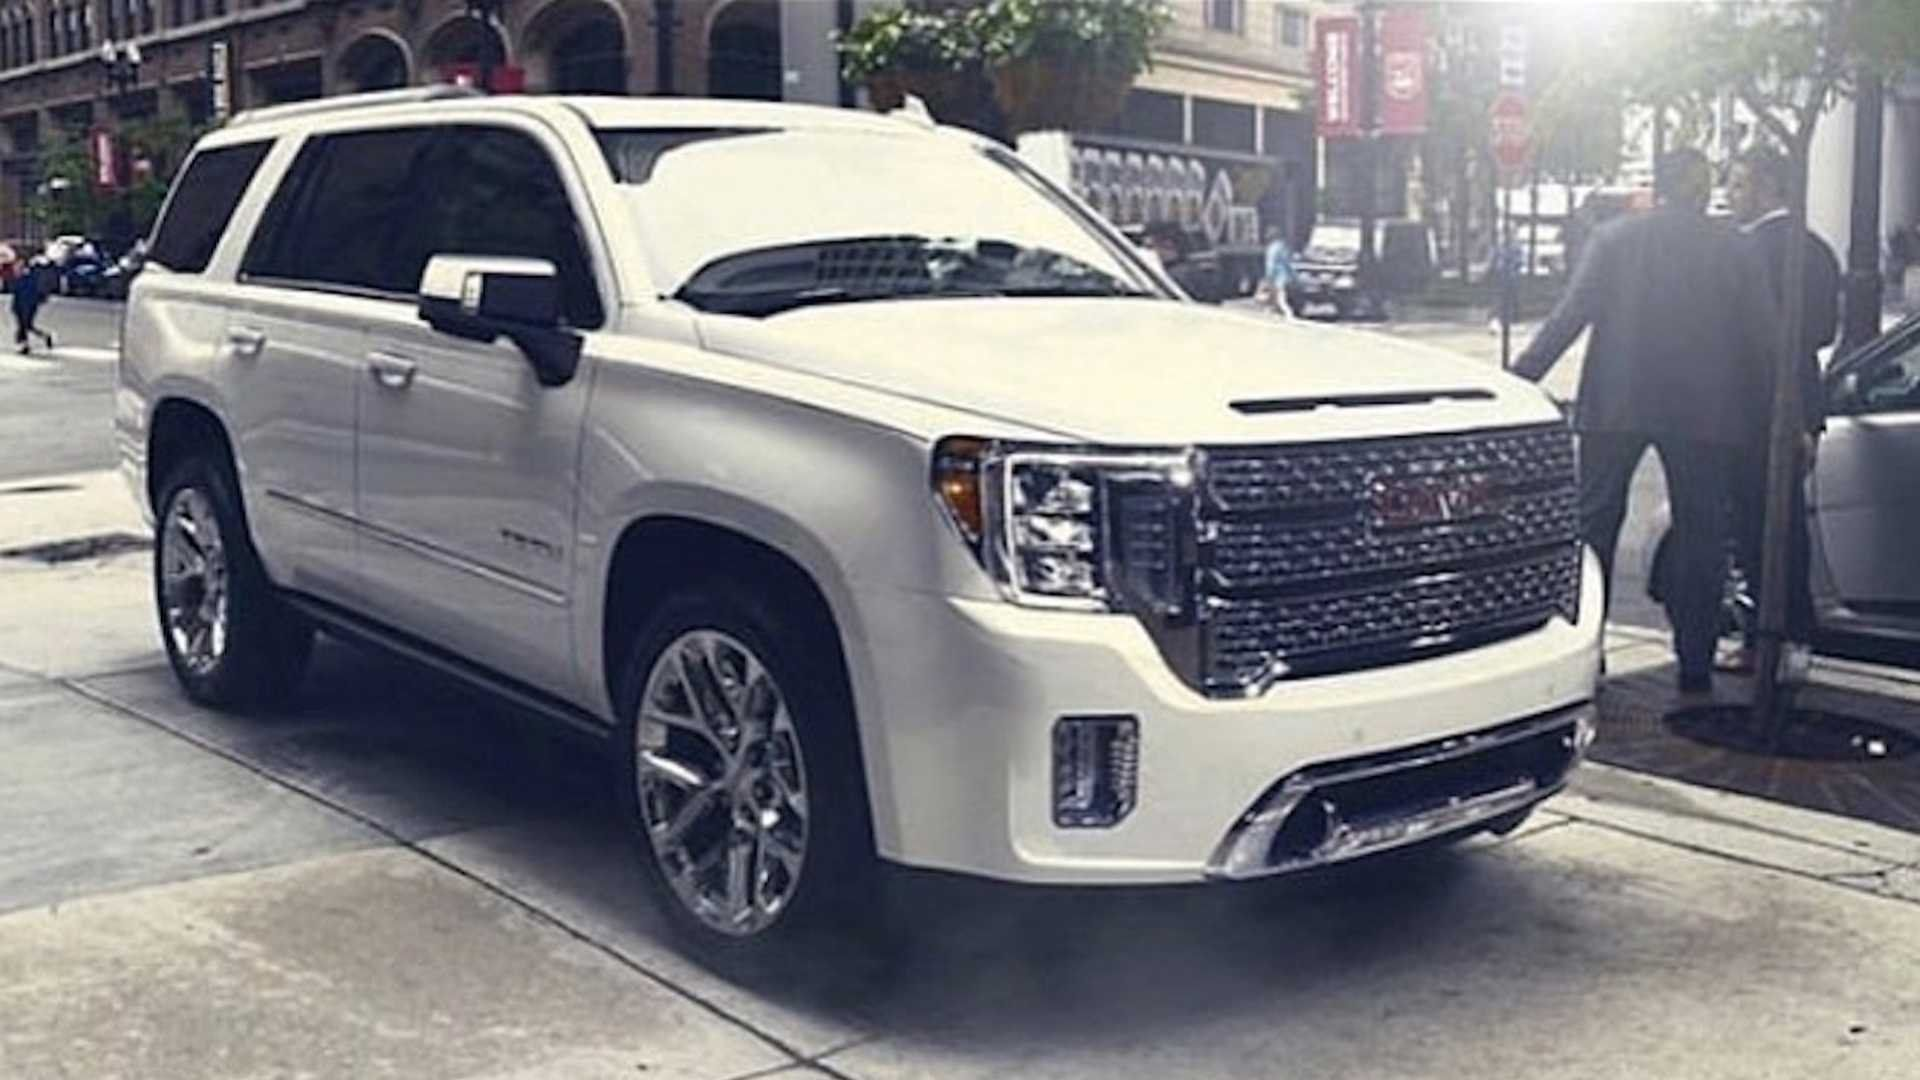 2020 Gmc Canyon Redesign And Concept In 2020 Gmc Yukon Yukon Denali Gmc Yukon Denali